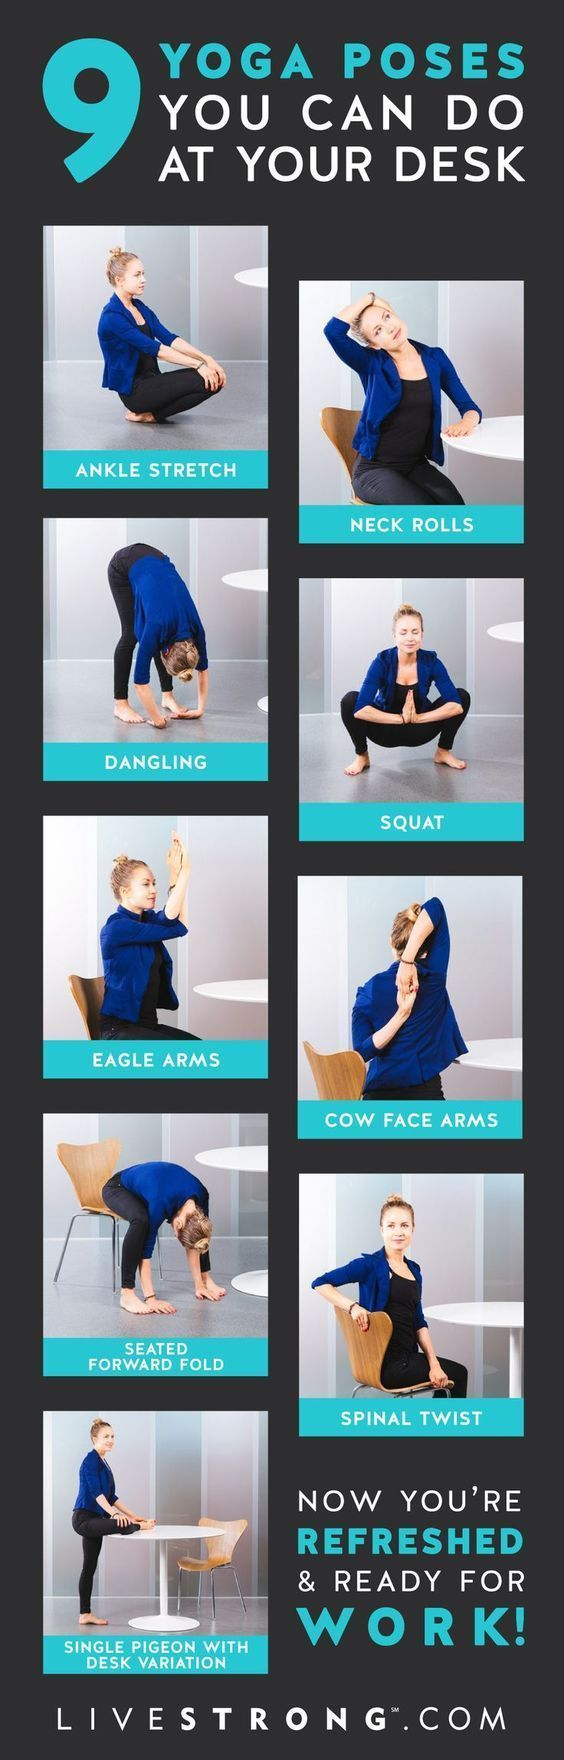 8 Stress Relieving Chair Yoga Routines You Can Easily Do At Work Olivia Wyles Yoga Benefits Yoga Tips Yoga Poses